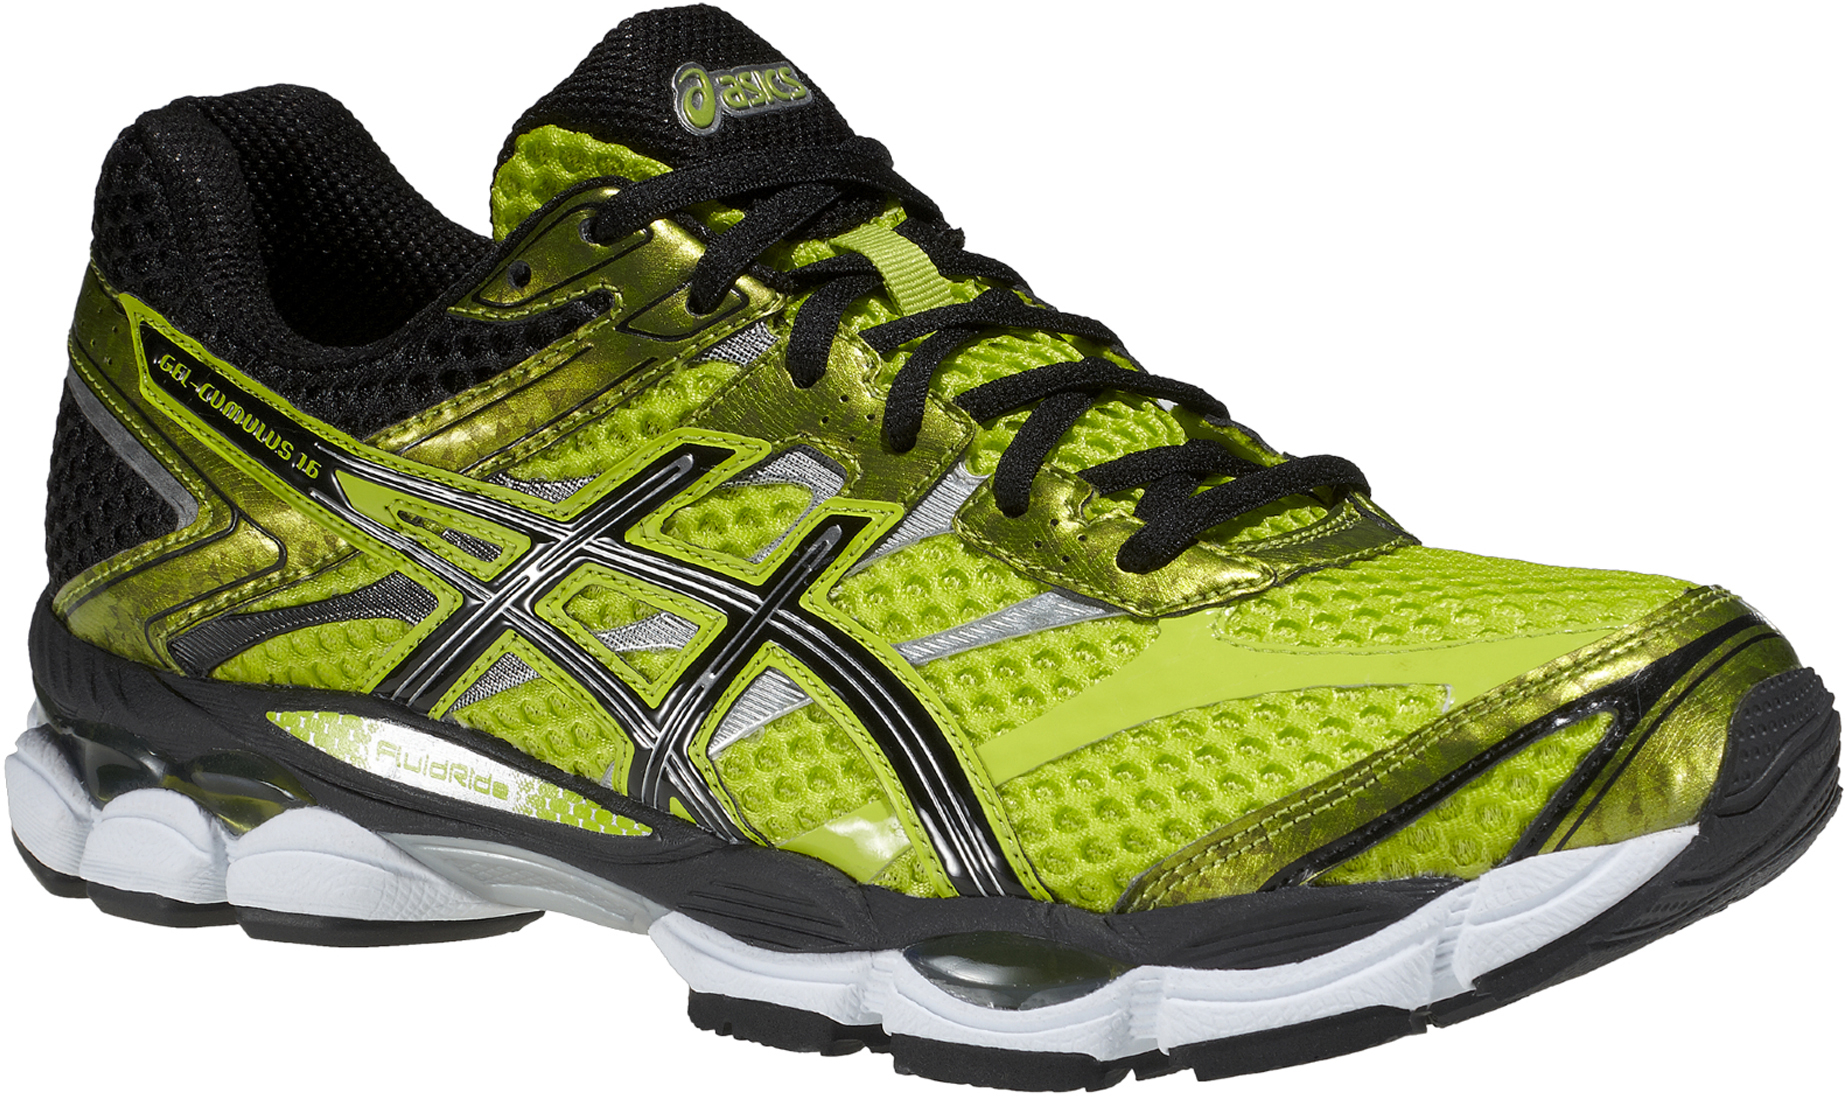 Wiggle Gel Aw14 РоссияAsics 16 Shoes Internal Cumulus SGqUzpjLMV